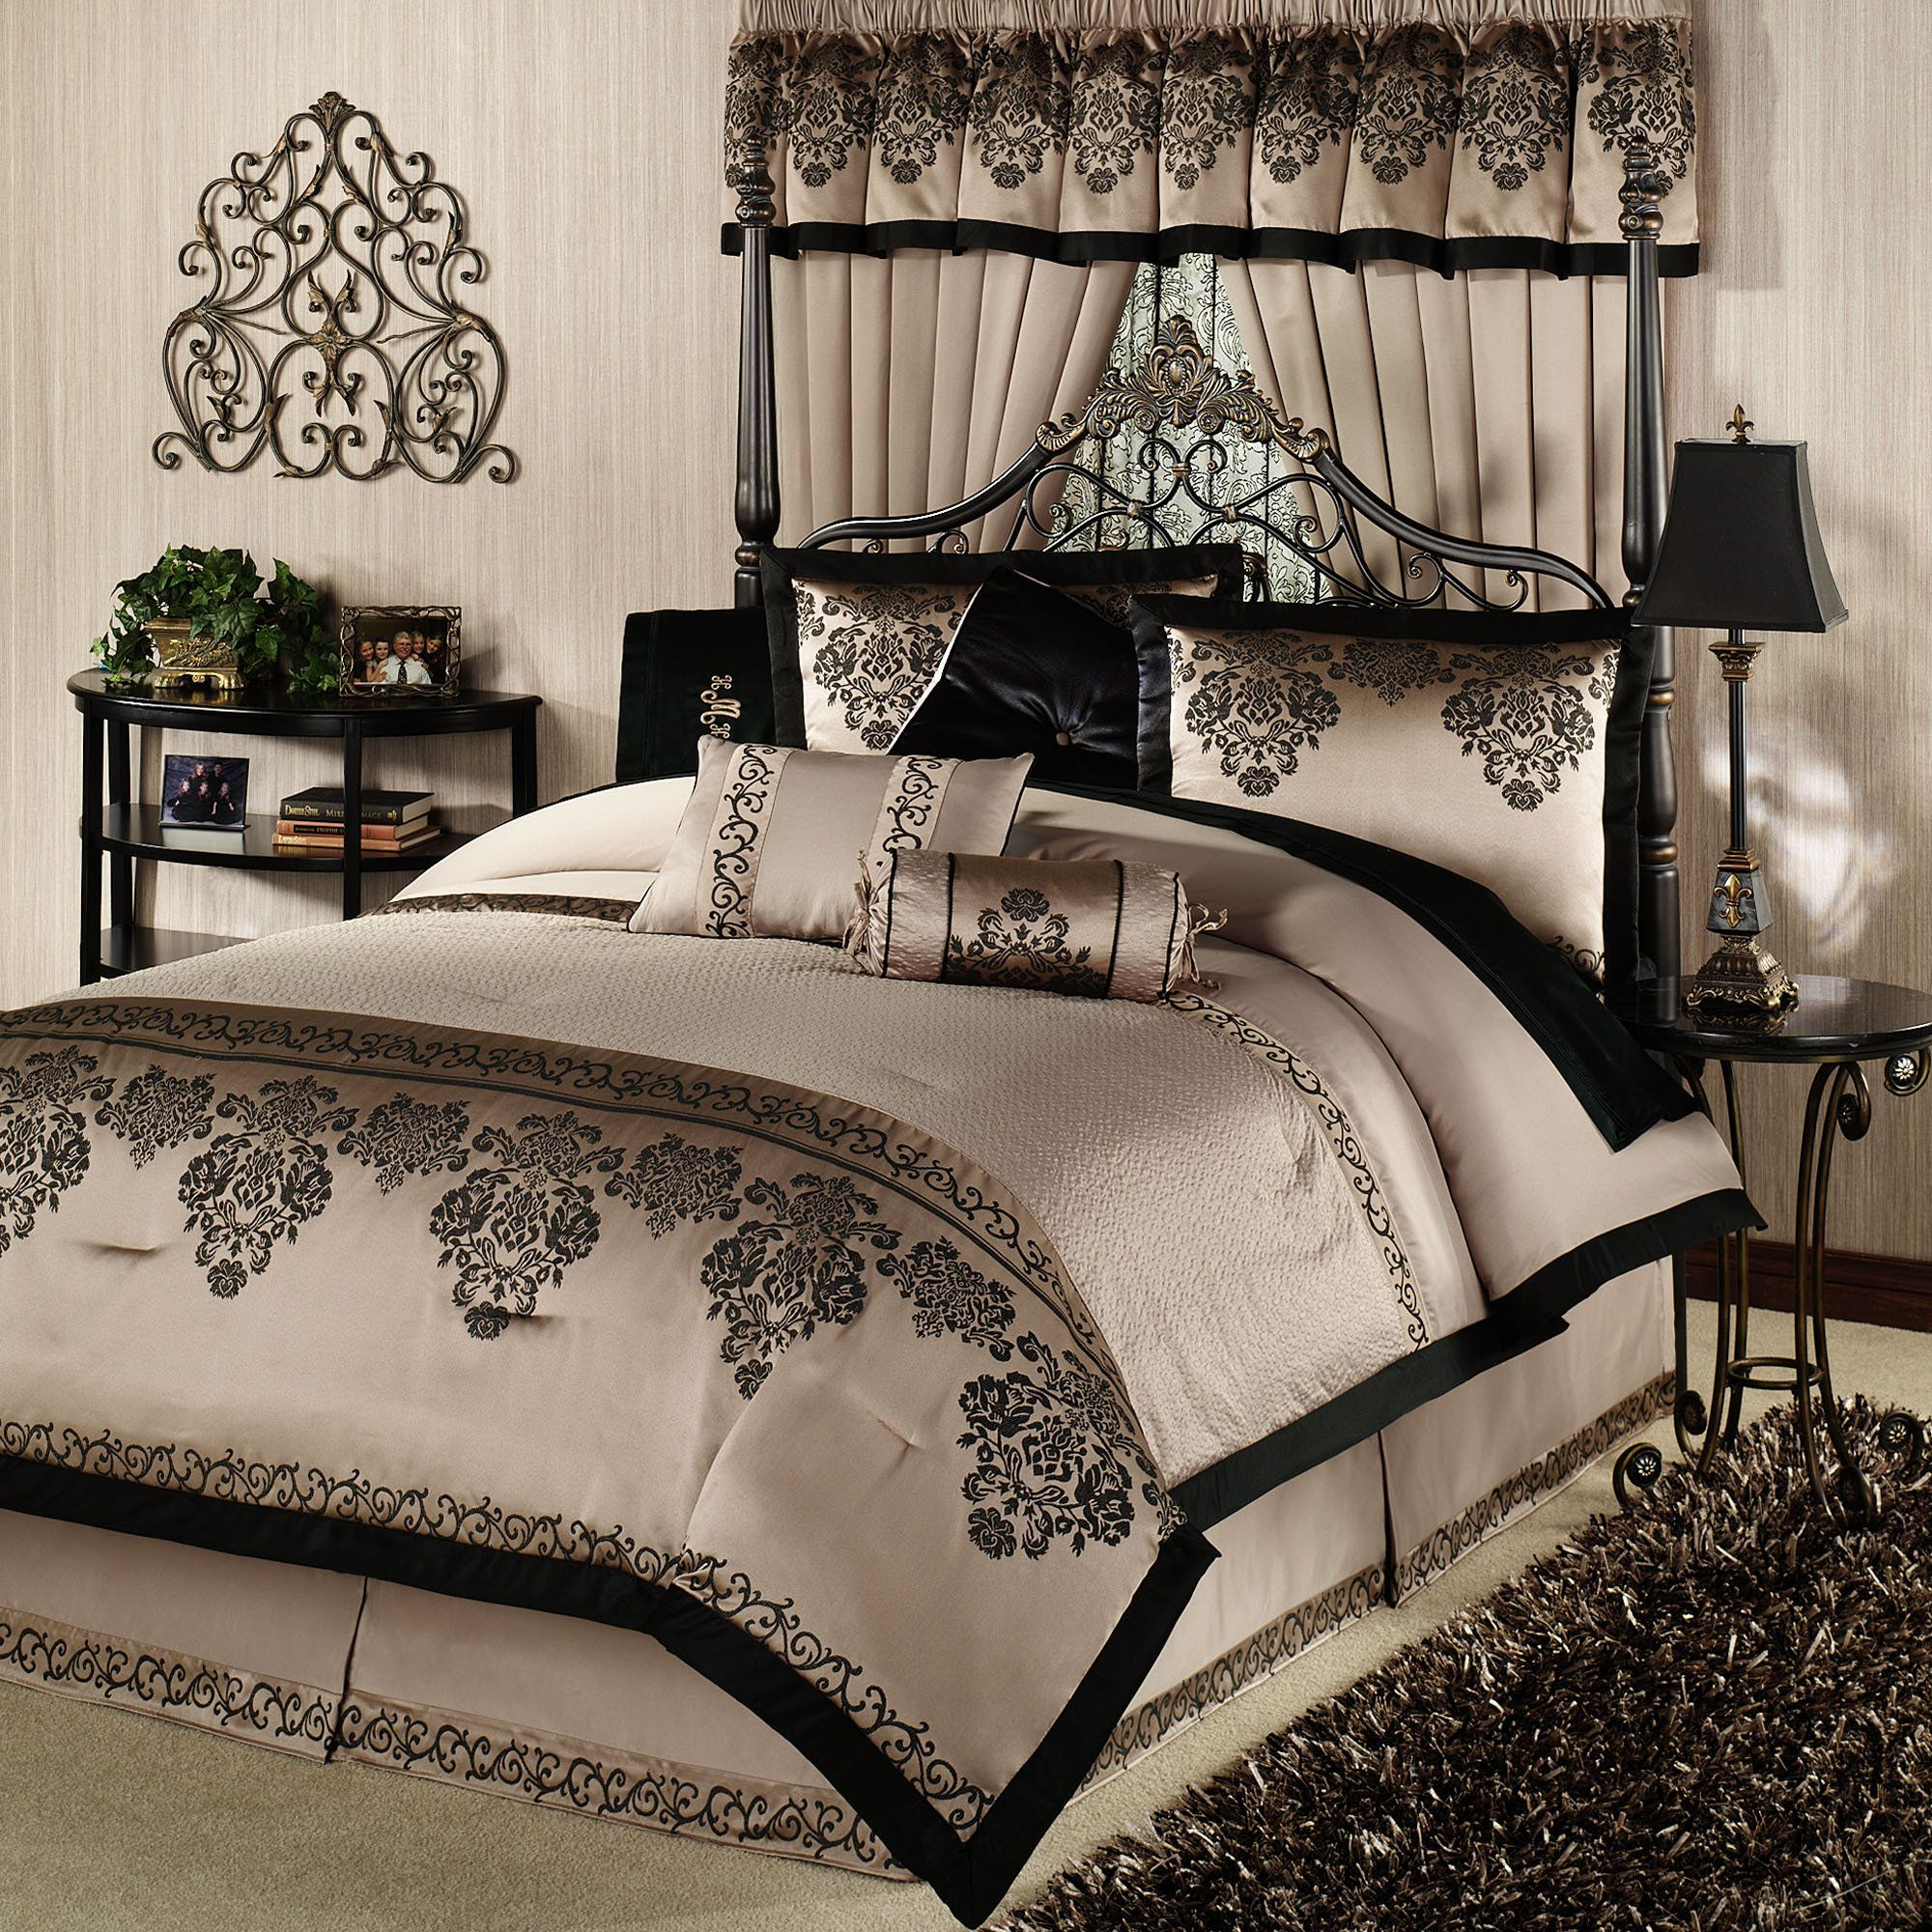 awesome bedding overstock sets spotlats bedroom comforter size king from bed clearance